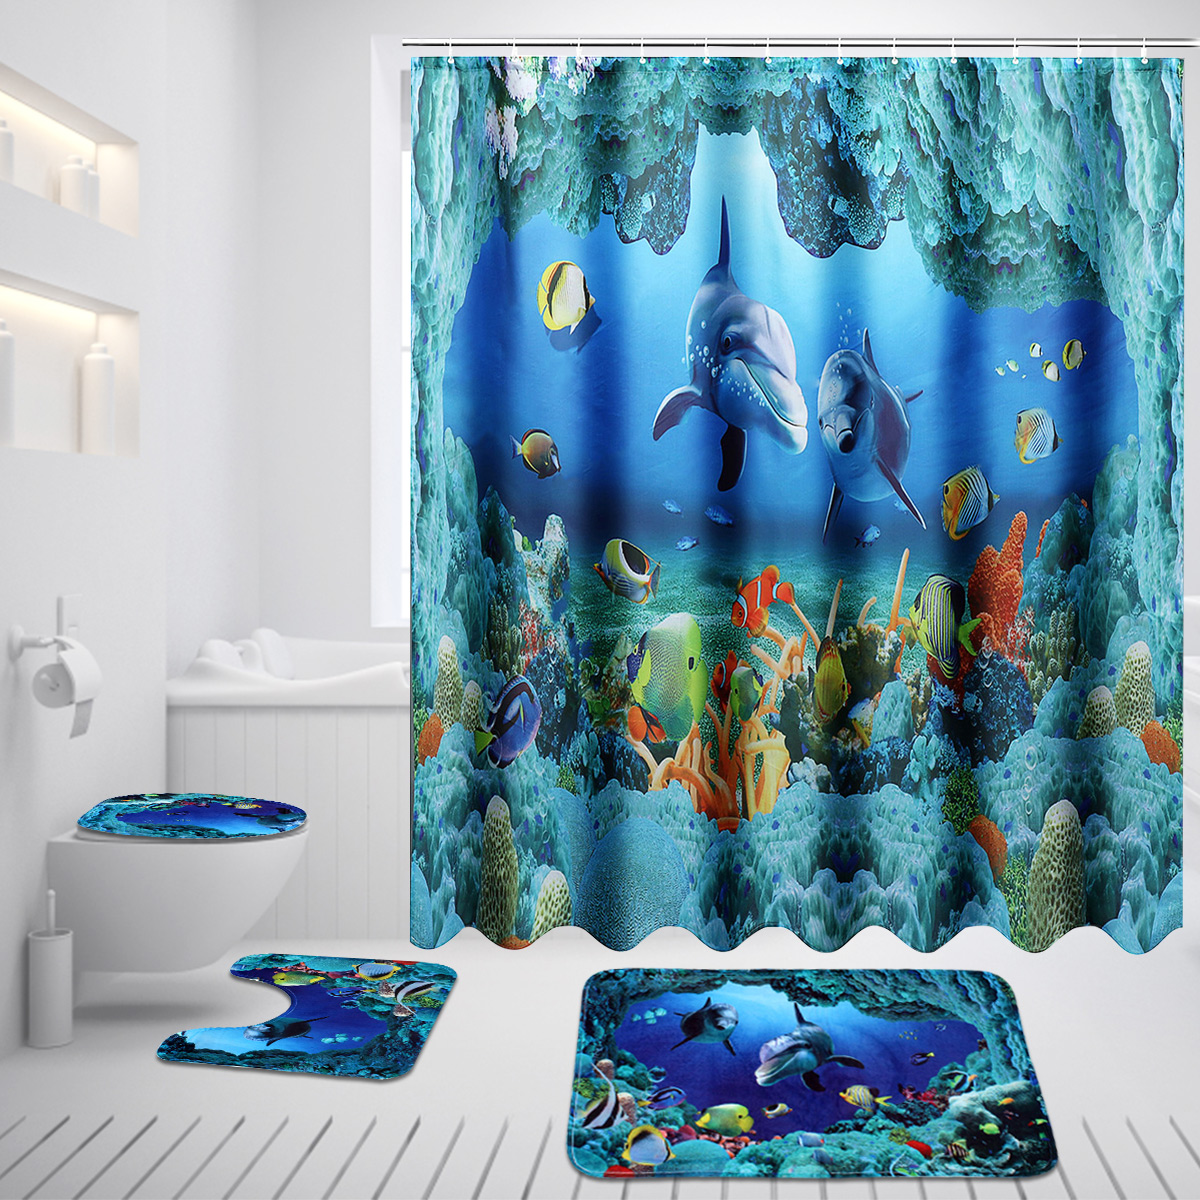 Bath 3d Dolphin Sunshine Shower Curtain Waterproof Fiber Bathroom Home Windows Toilet Home & Garden